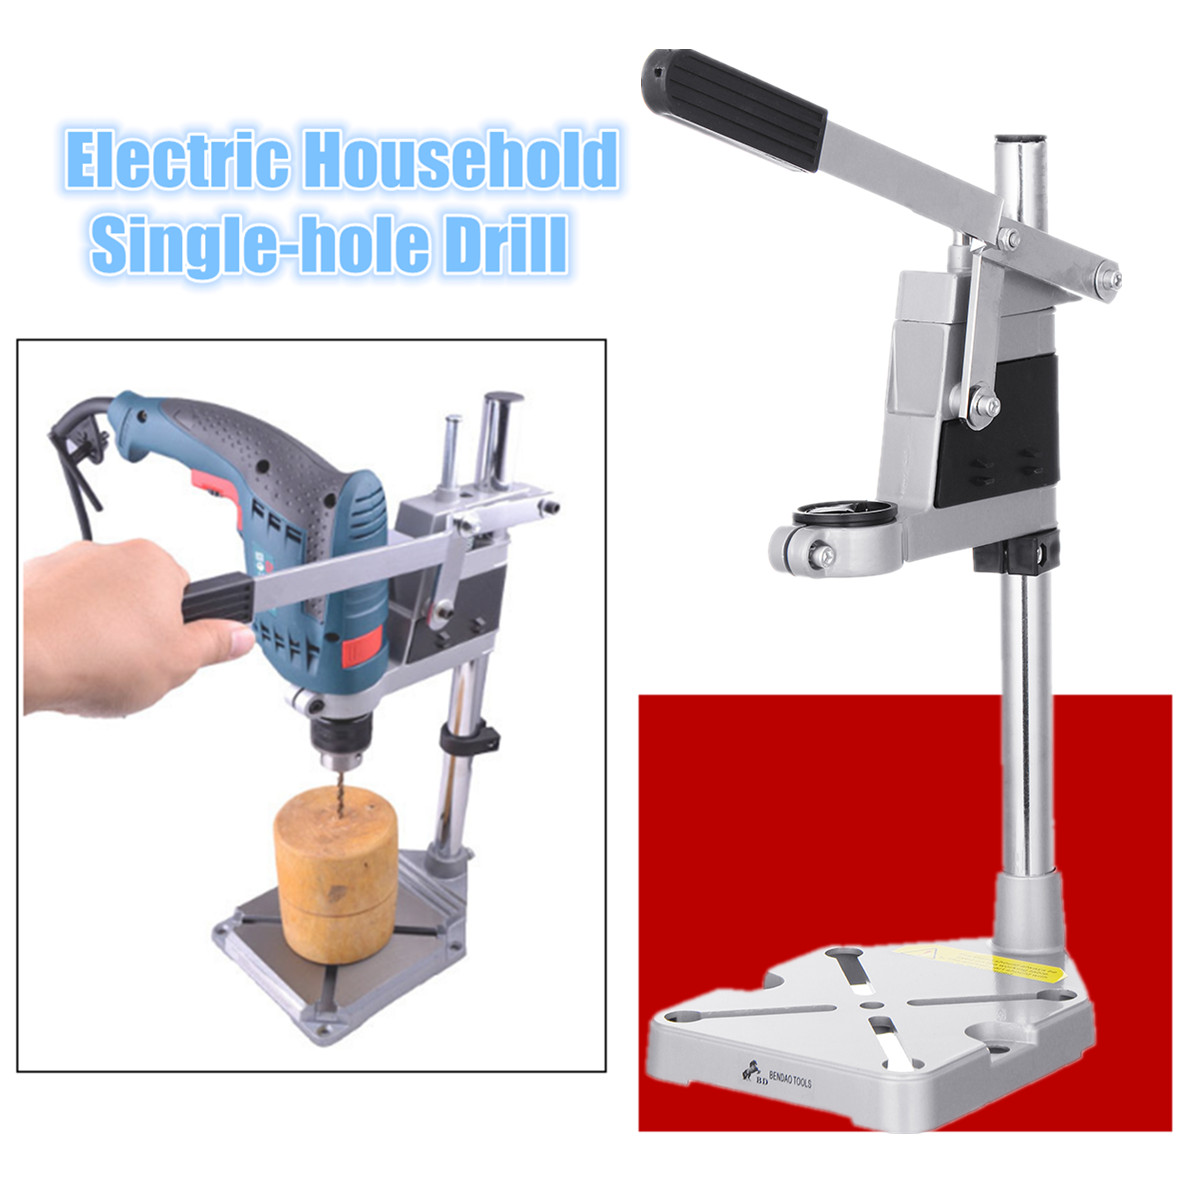 Single-hole Electric Drill Stand Carbon Steel Aluminum Adjustable For Woodworking Machine Household DIYSingle-hole Electric Drill Stand Carbon Steel Aluminum Adjustable For Woodworking Machine Household DIY